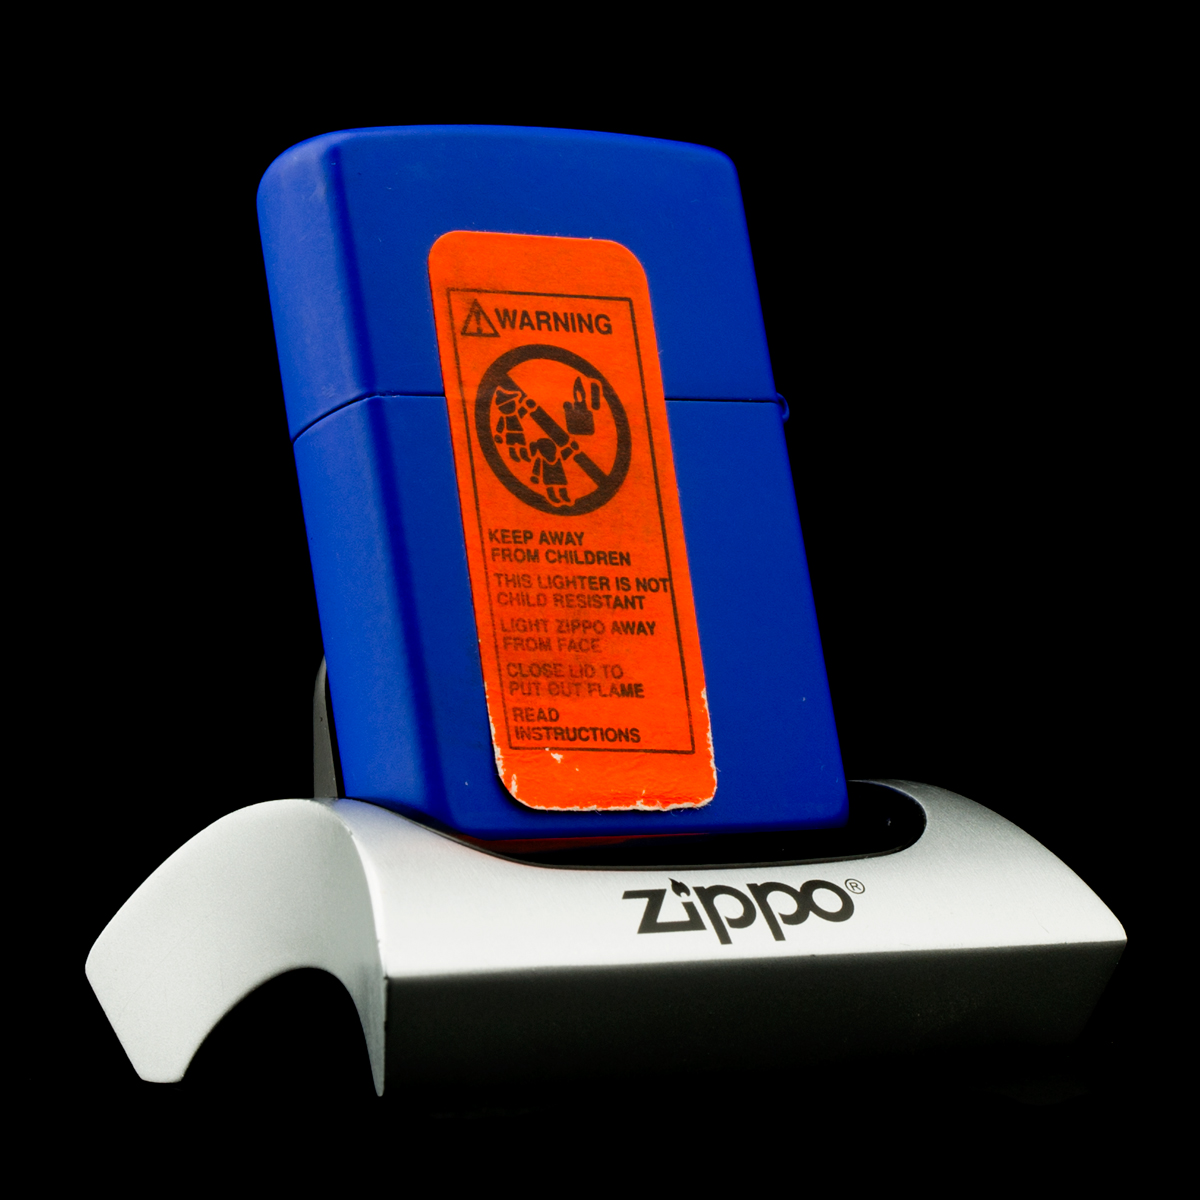 hop-quet-zippo-seal-of-the-president-of-the-united-ttates-xvi-2000-huy-hieu-tong-thong-my-rat-hiem